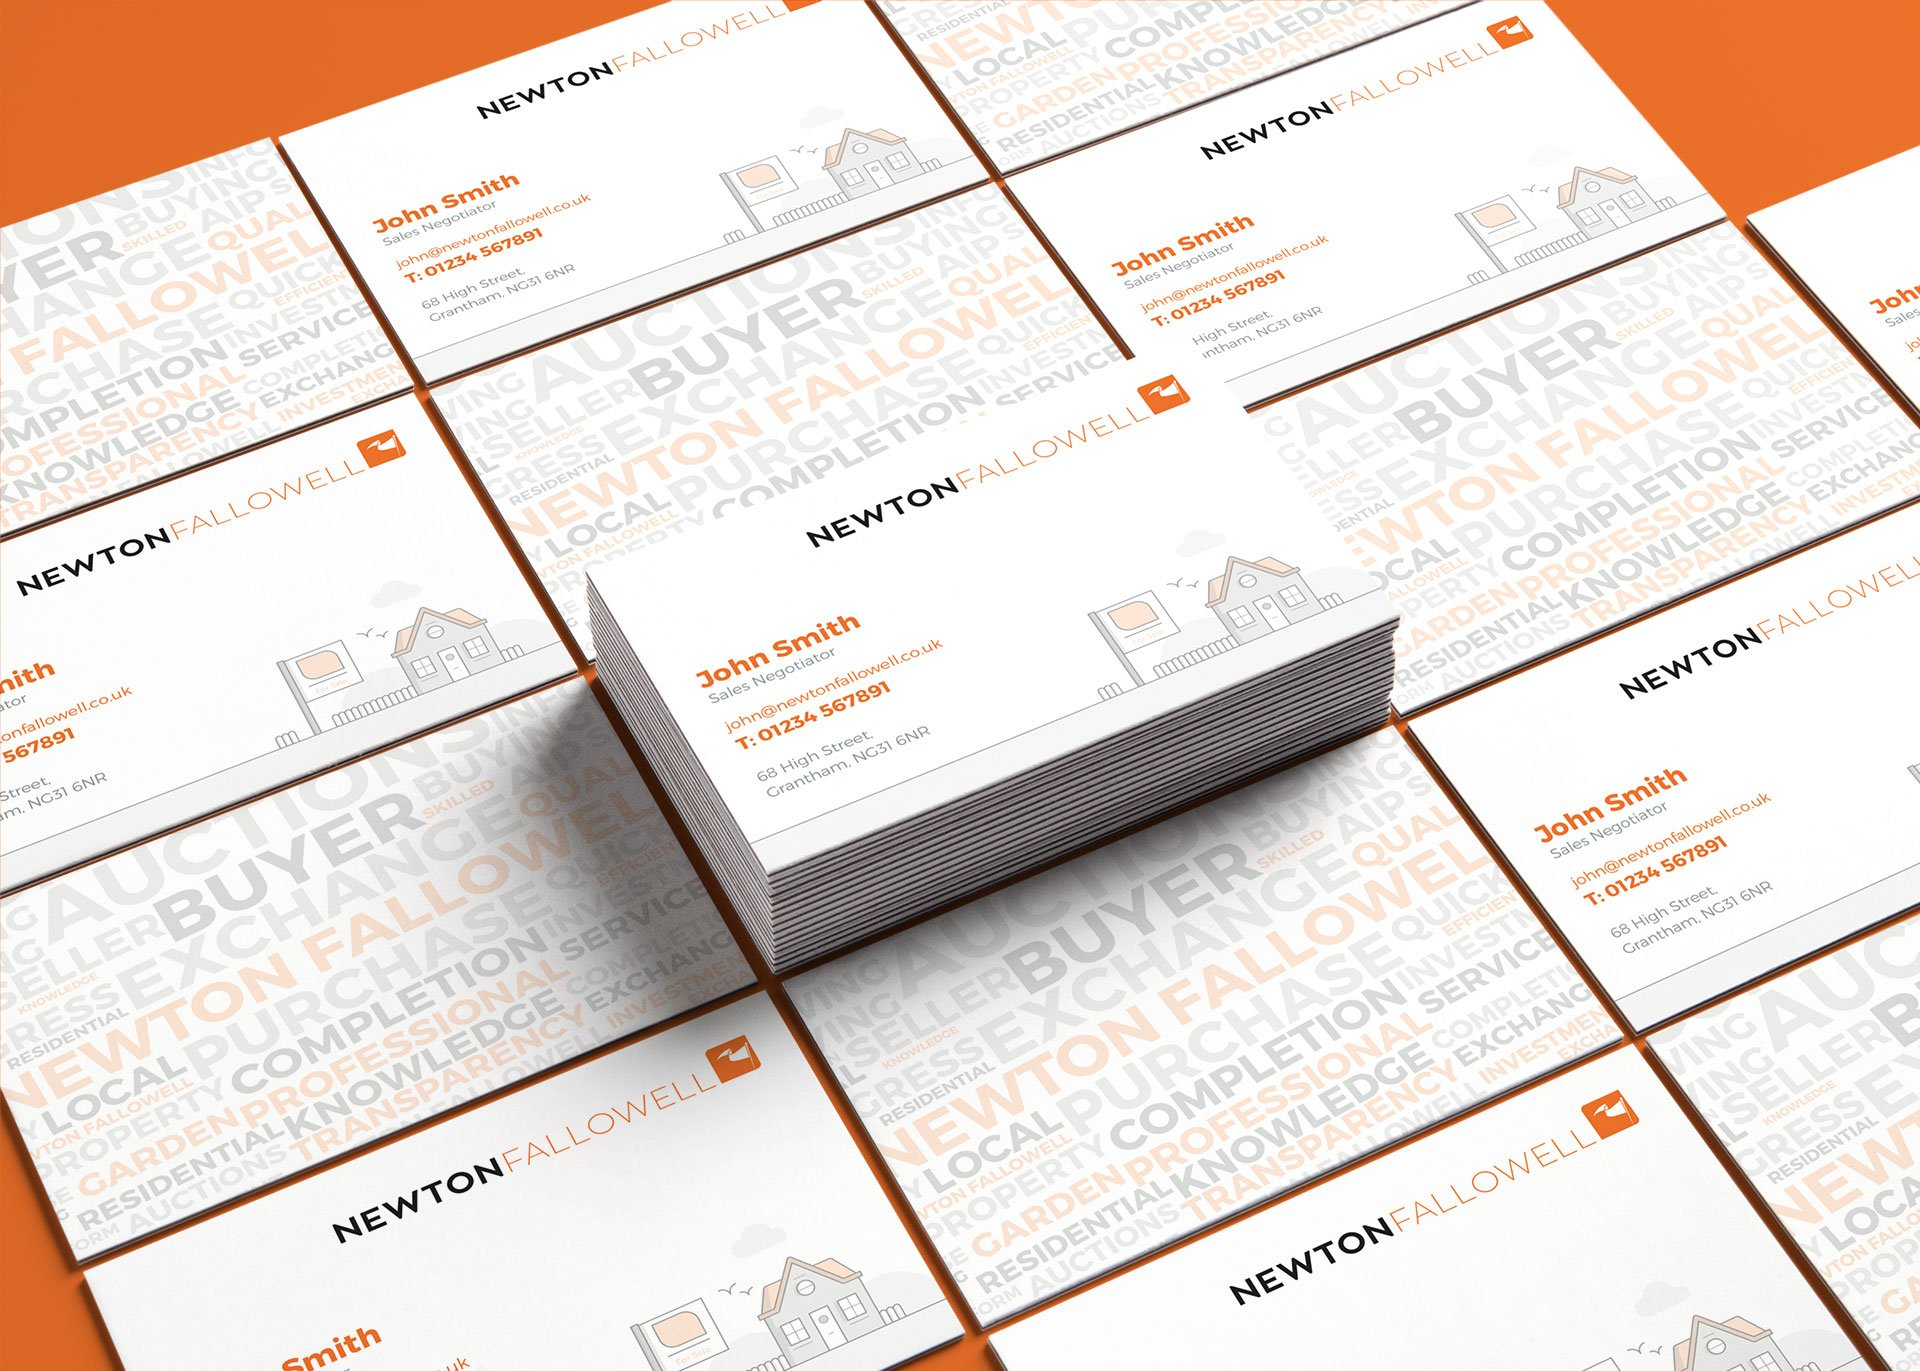 Newton Fallowell Business Cards